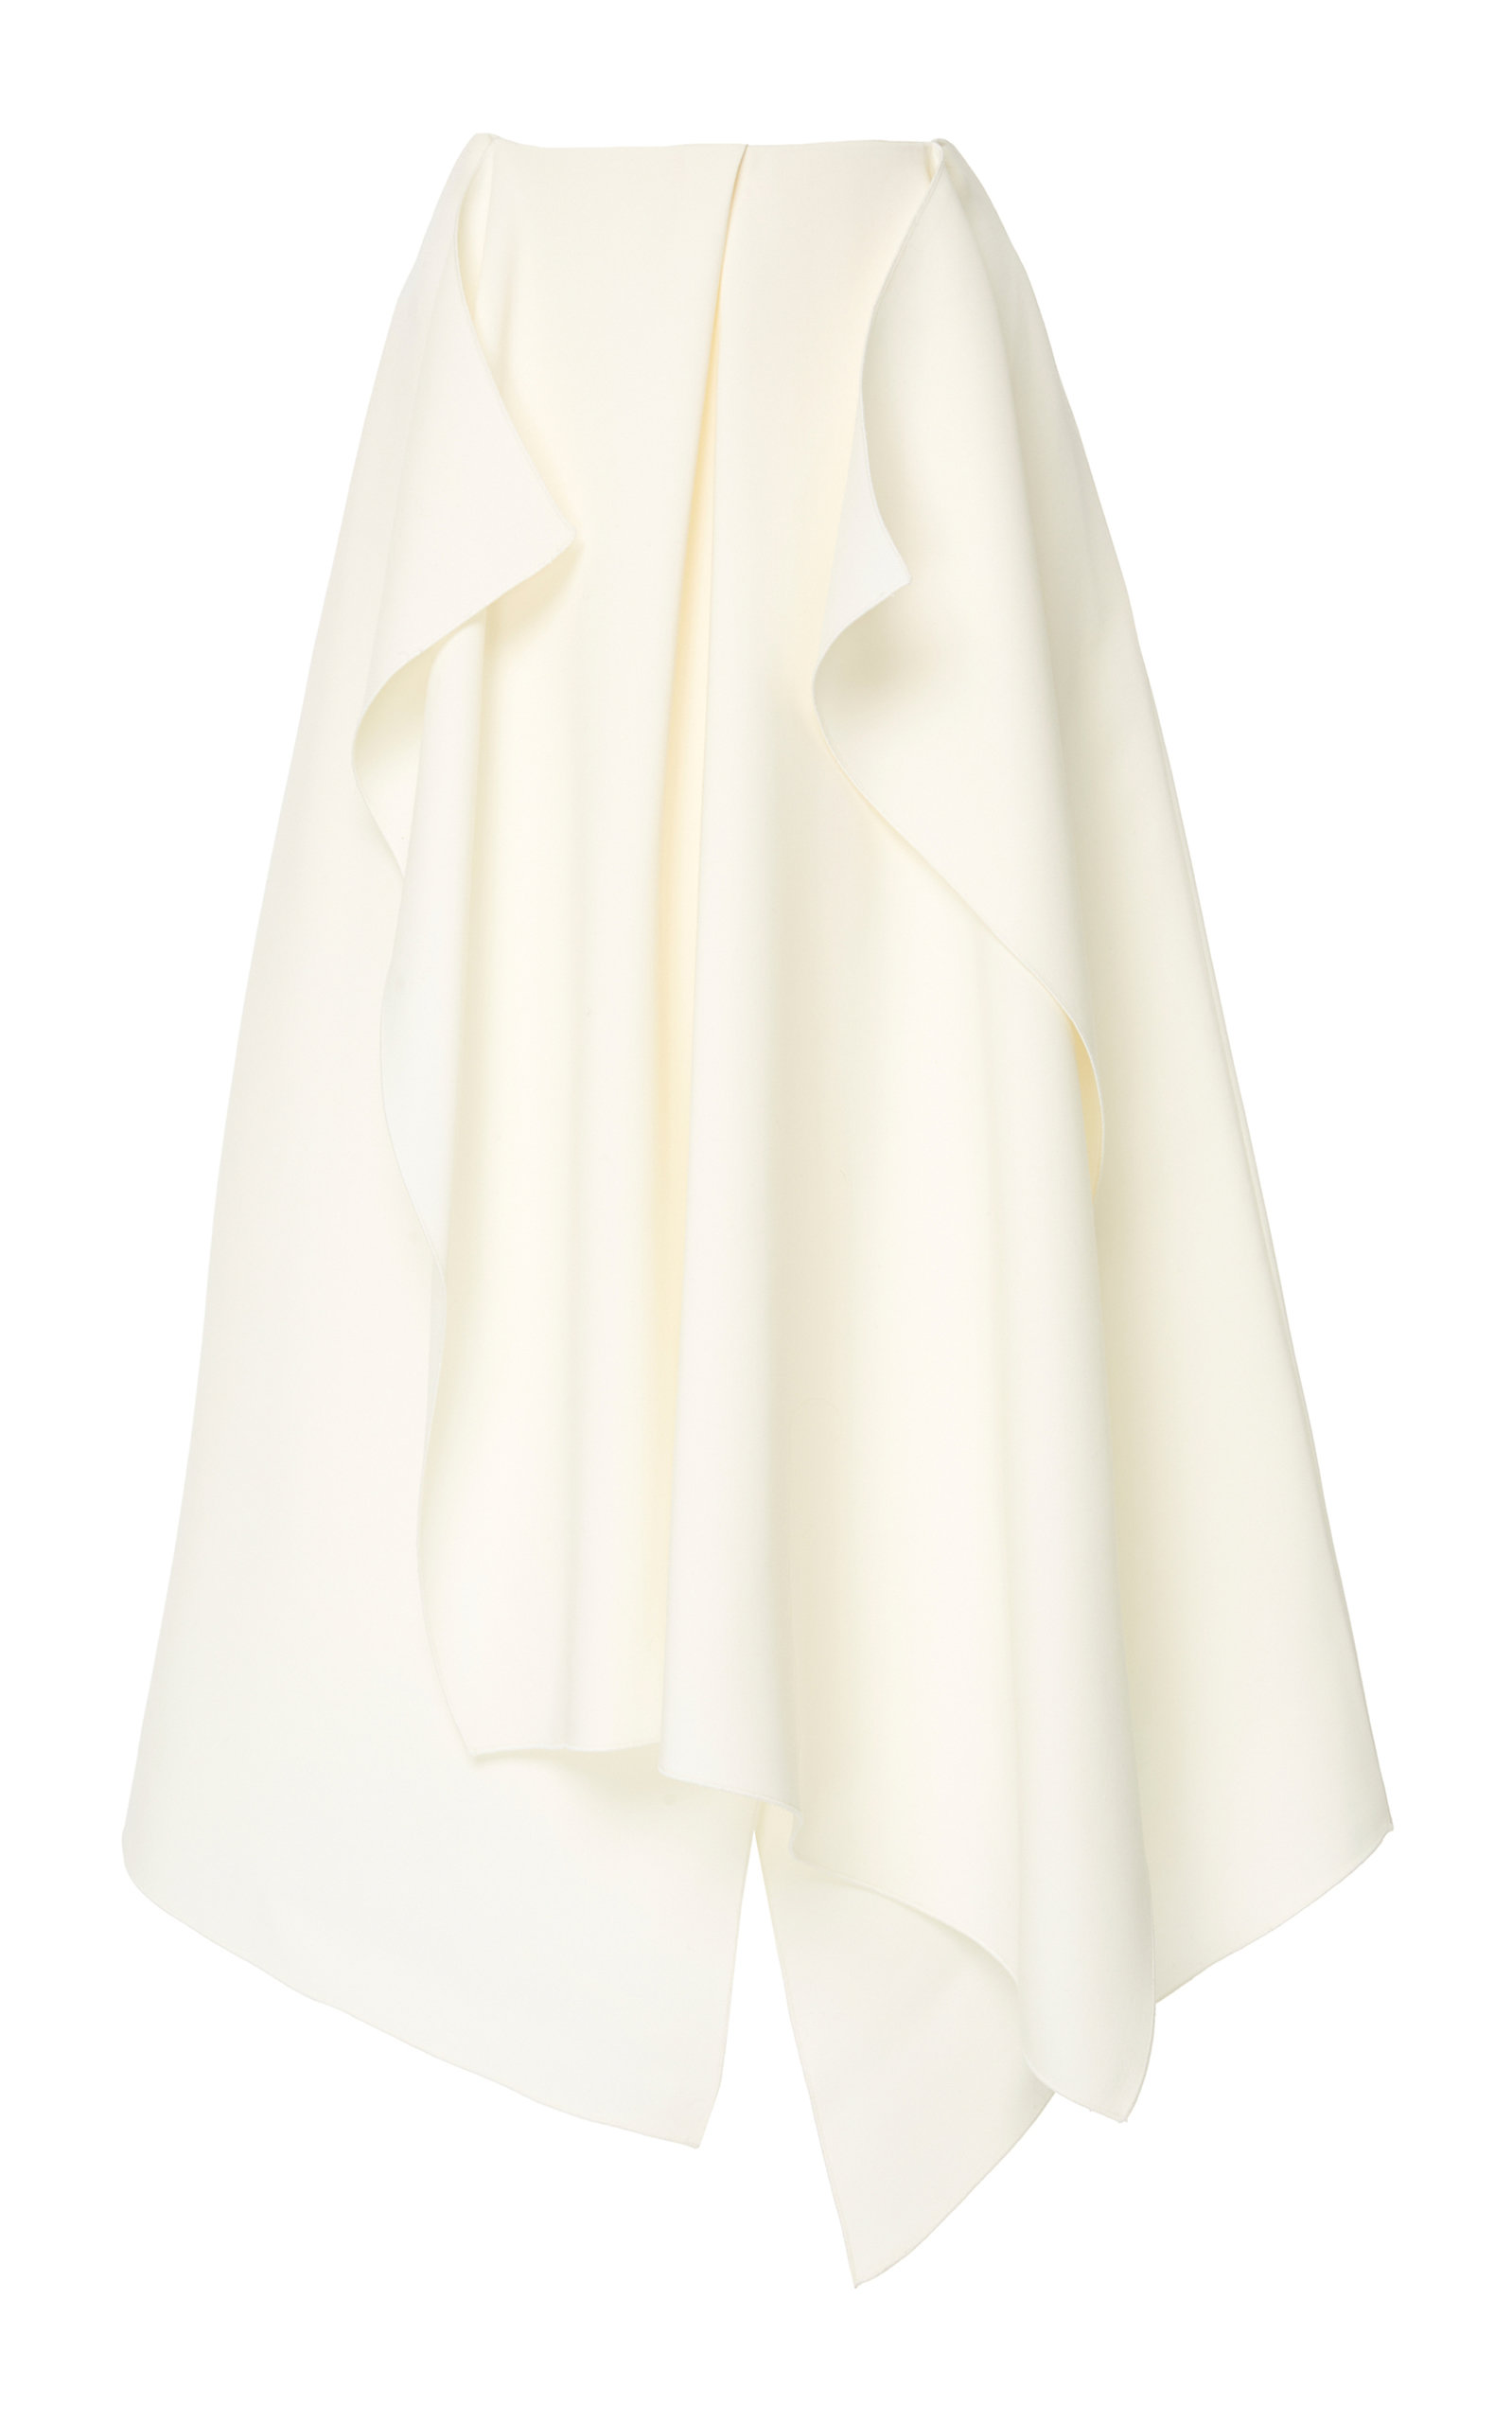 YEON M'O Exclusive Phoebe Pleated Wool And Silk-Blend Midi Skirt in White